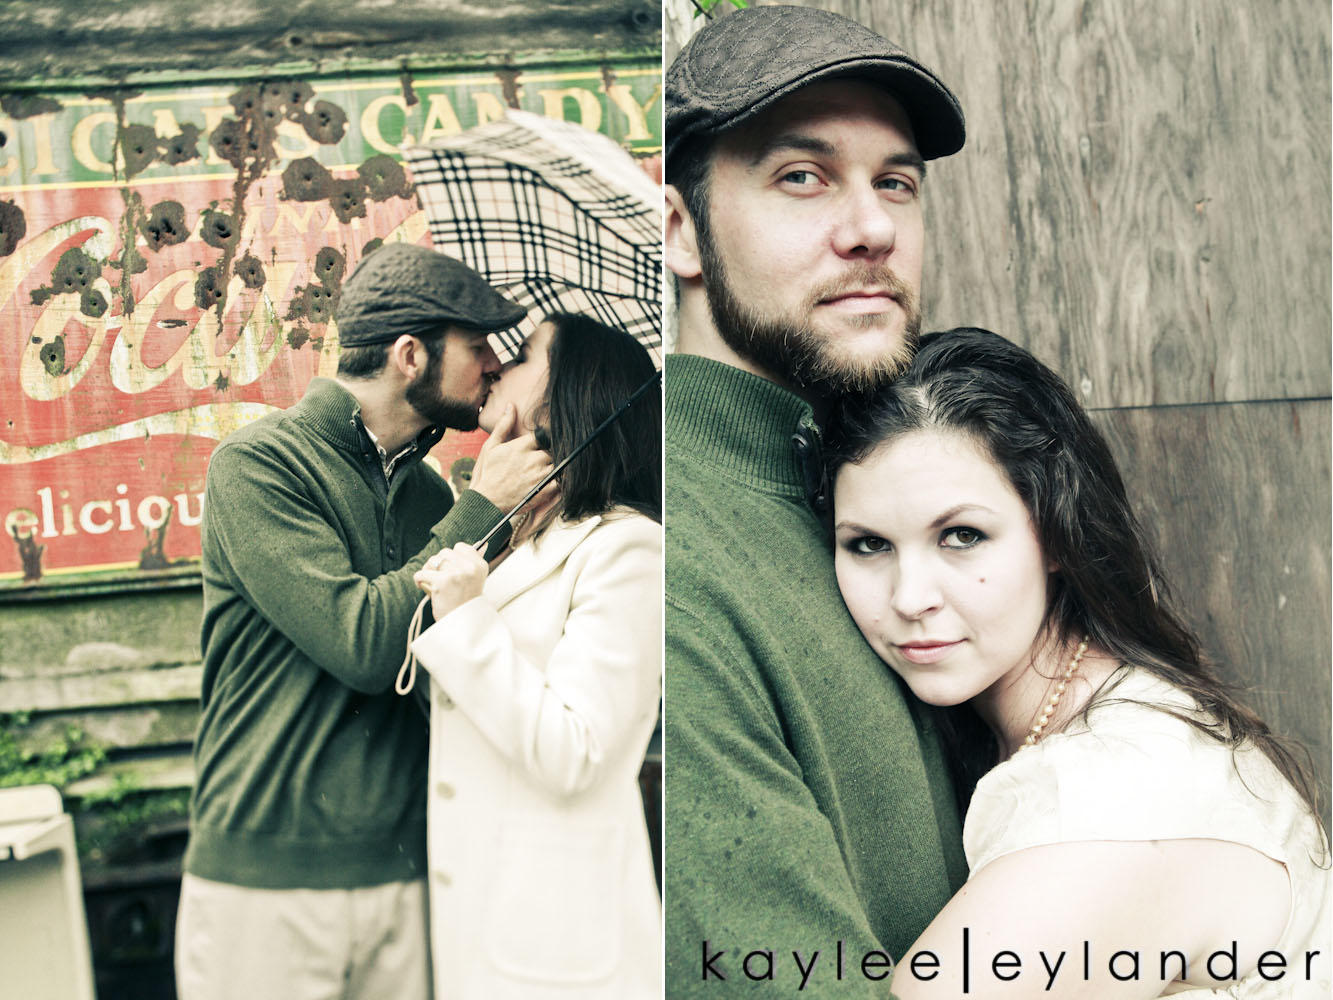 00012 Engagement Session in Snohomish | Quirky, Fun and a Little Random